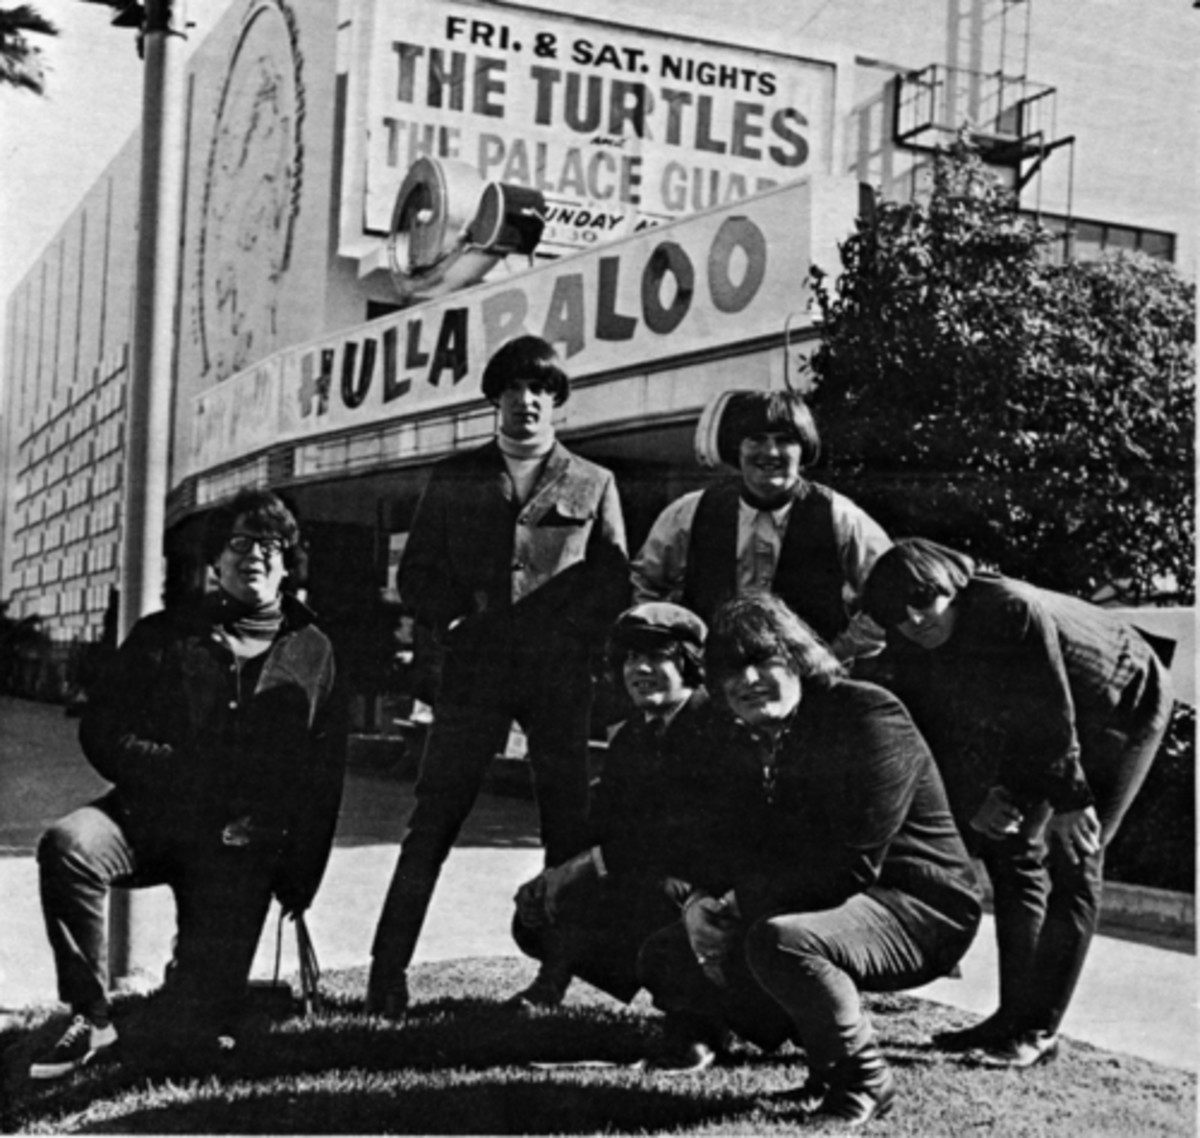 The Turtles, publicity photo